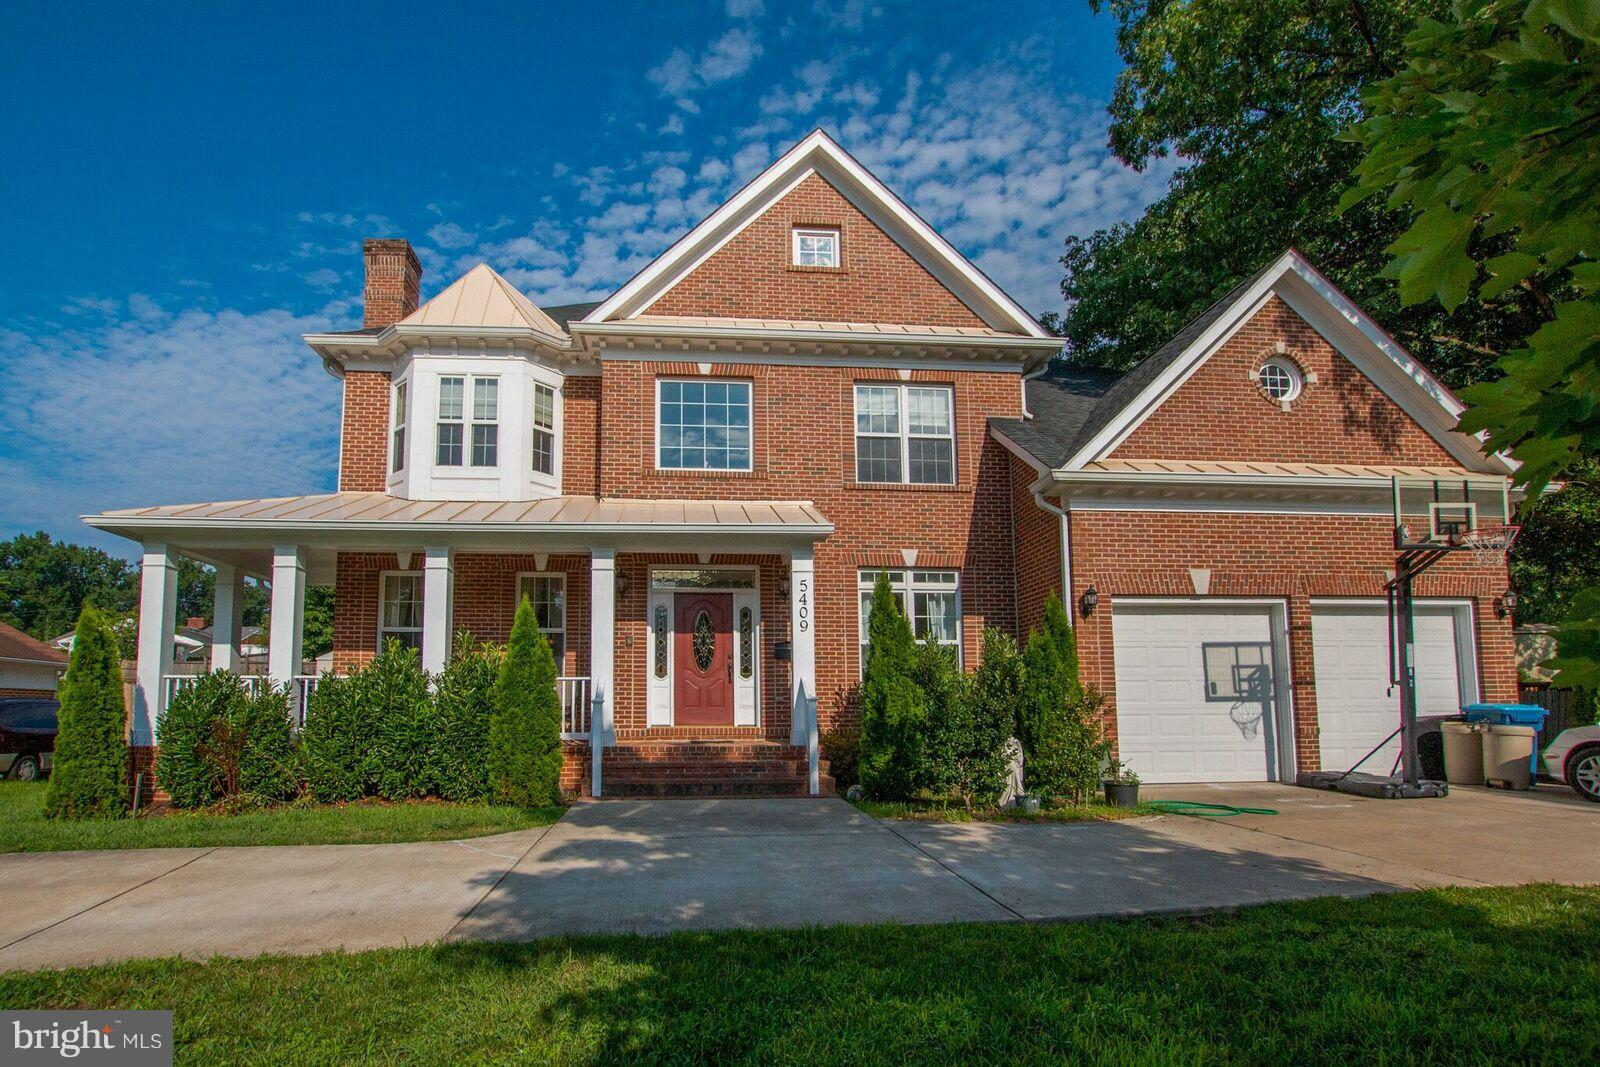 LOCATION, LOCATION, LOCATION, Bright and Beautiful Colonial in sought after North Springfield. Open floor plan with many updates. Home features 6 bedrooms and 4.5 baths. Hardwood floors, Large, cozy master bedroom, and much more!